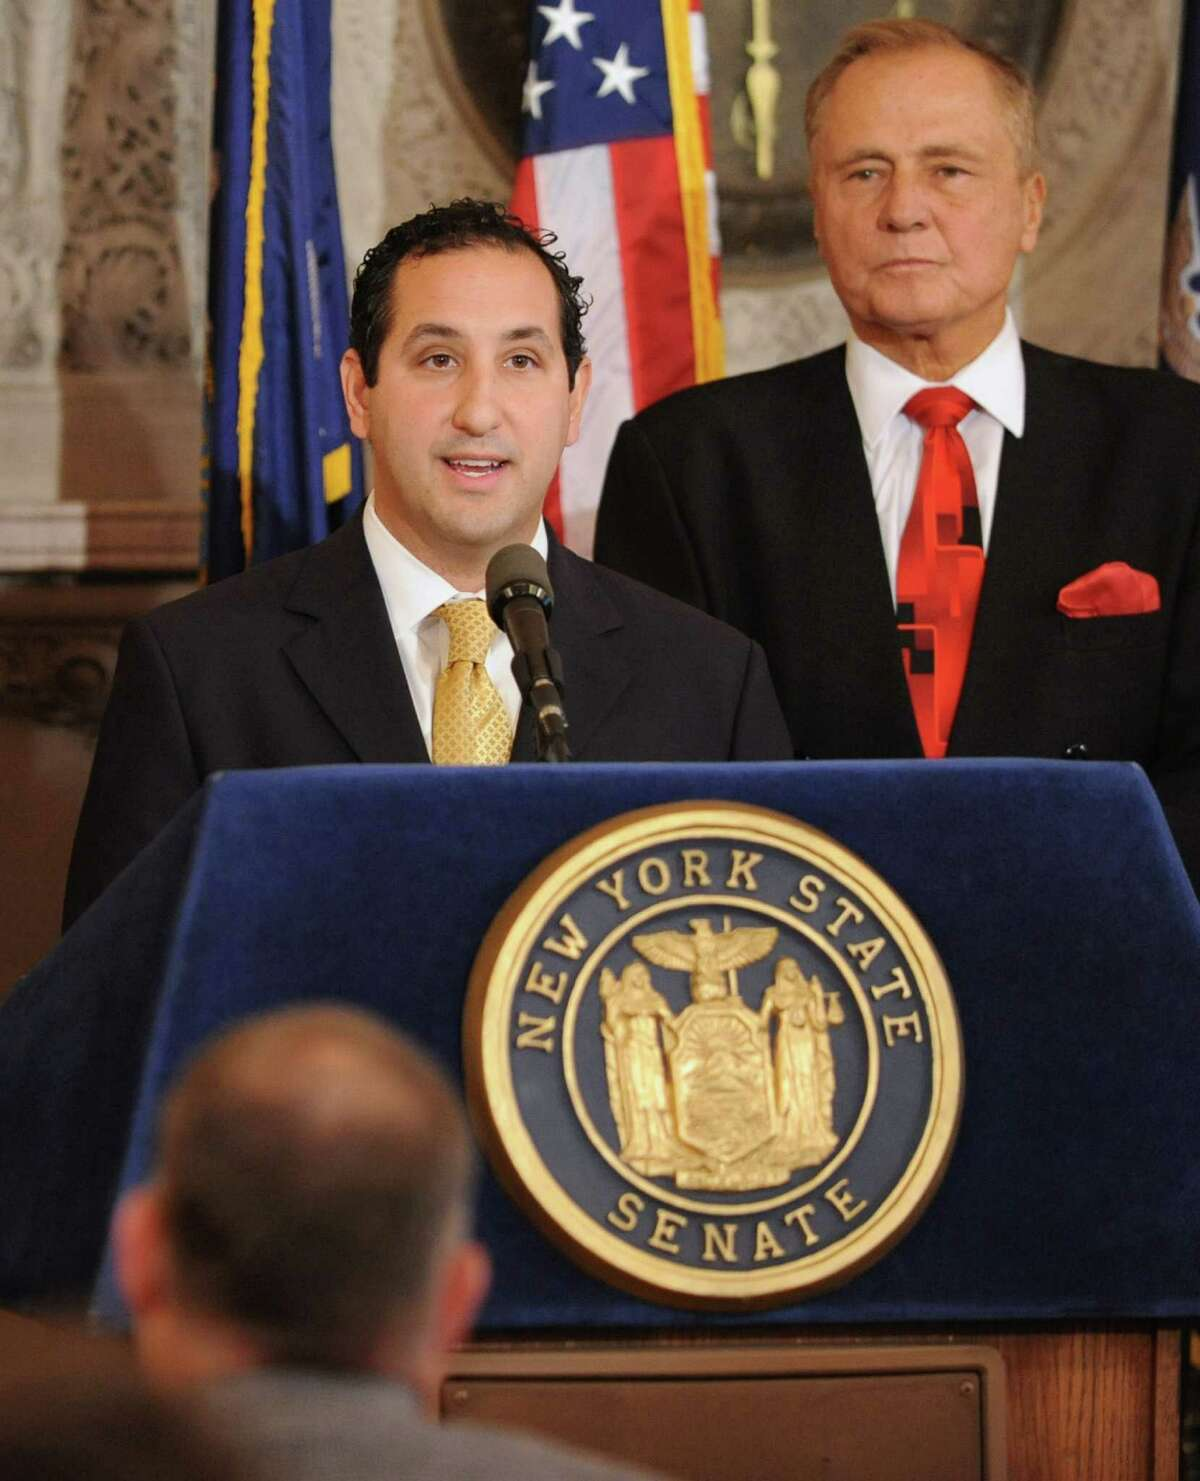 Jeffrey Cannizzo of the New York Thoroughbred Breeders speaks during a press conference at the Capitol Tuesday, Oct. 16, 2012 in Albany, N.Y. The leaders released a report commissioned by the New York Horse Racing and Agriculture Industry Alliance on the economic impact of the Equine industry in NYS. New York Senator John Bonacic stands behind him. (Lori Van Buren / Times Union)